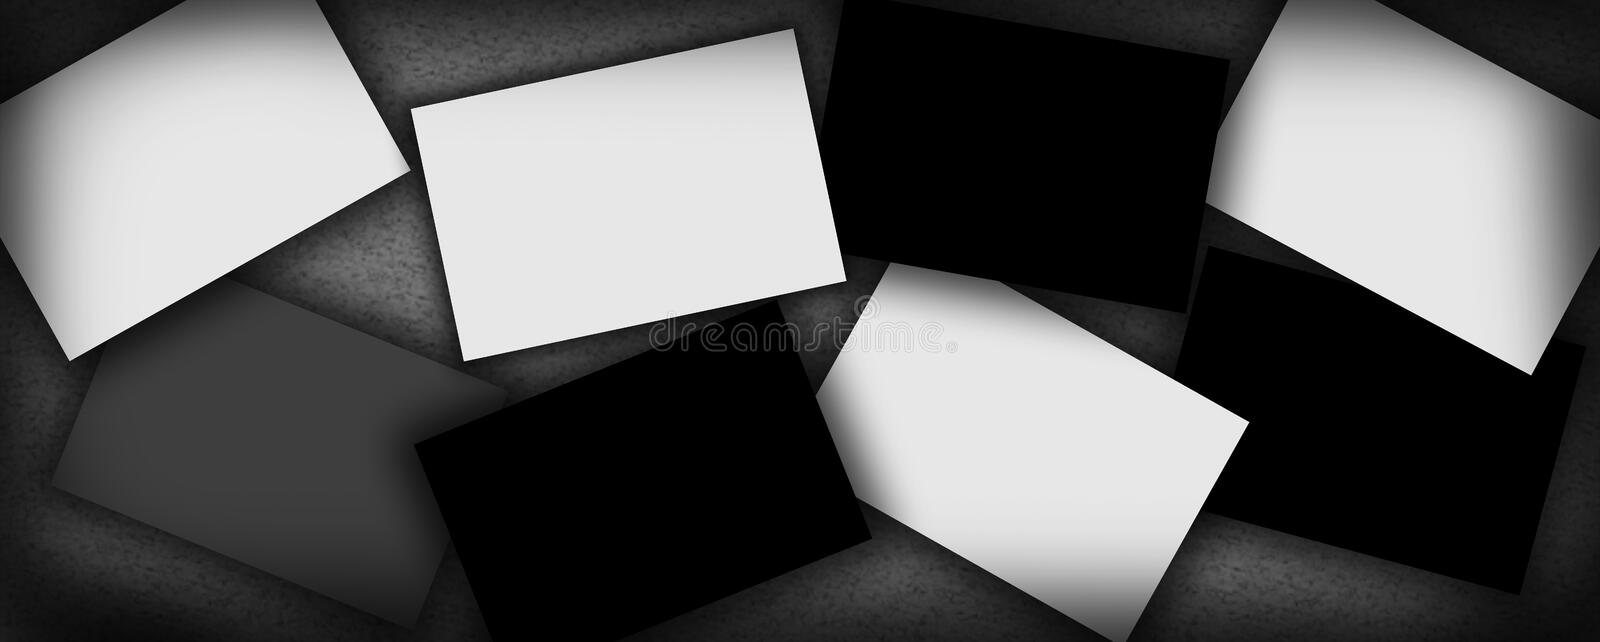 Template for your images, paintings portfolio. Or you can put inside the boxes whatever you want royalty free stock photos